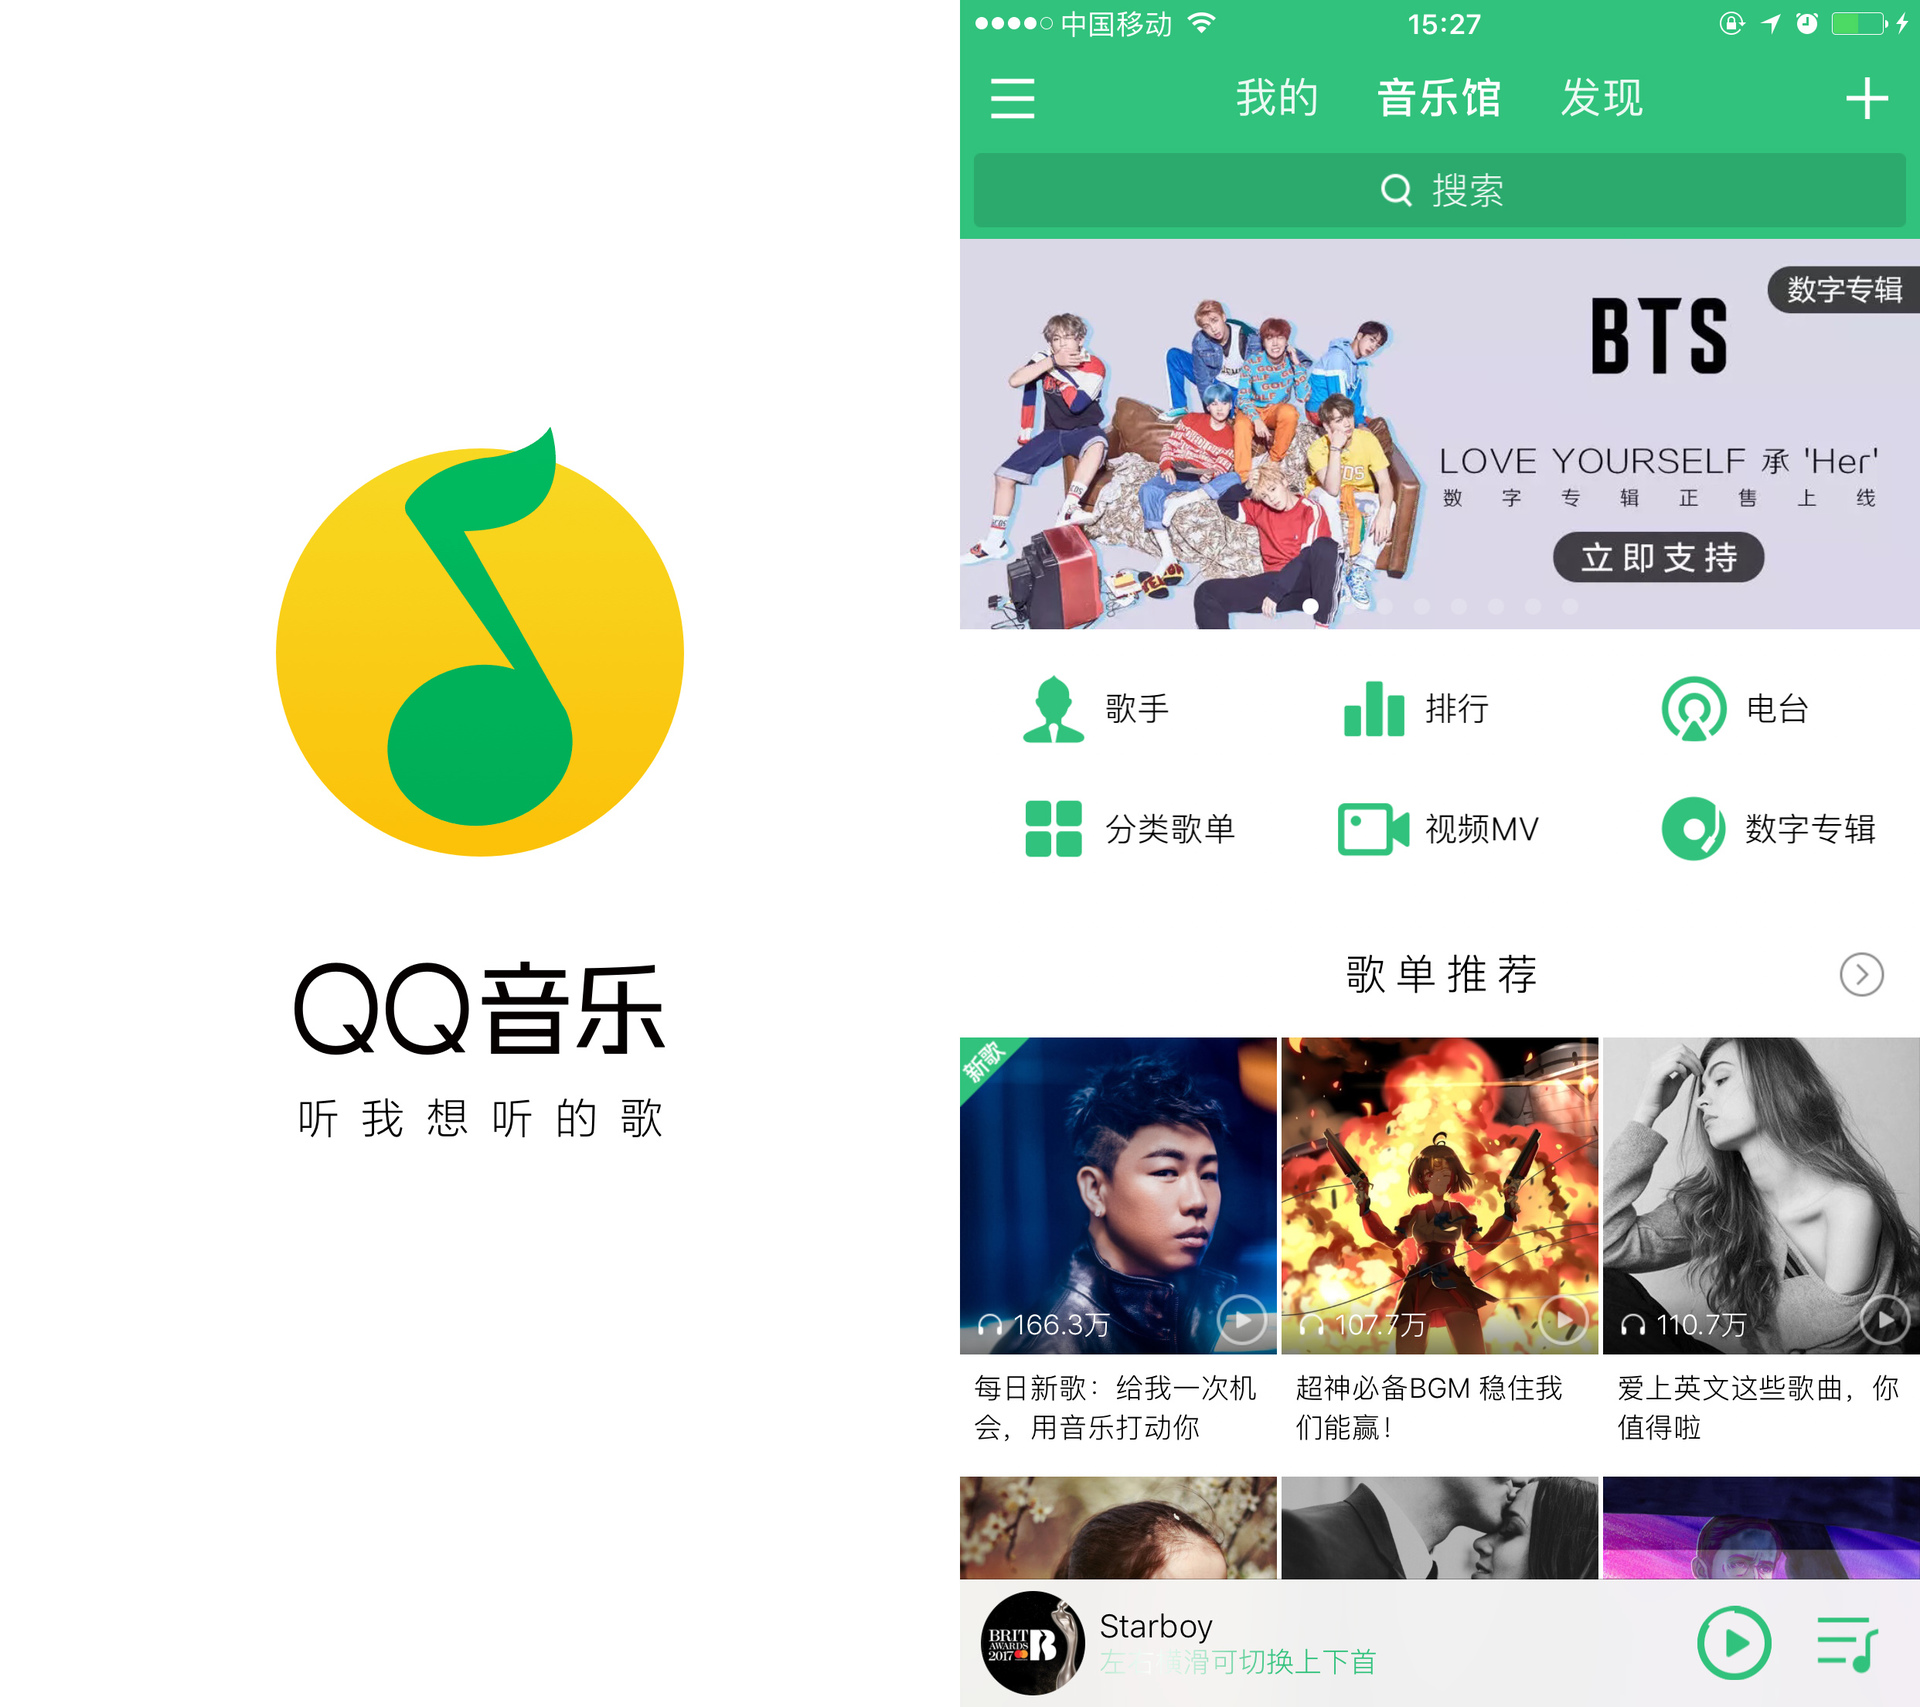 China is fast becoming a leading market for music